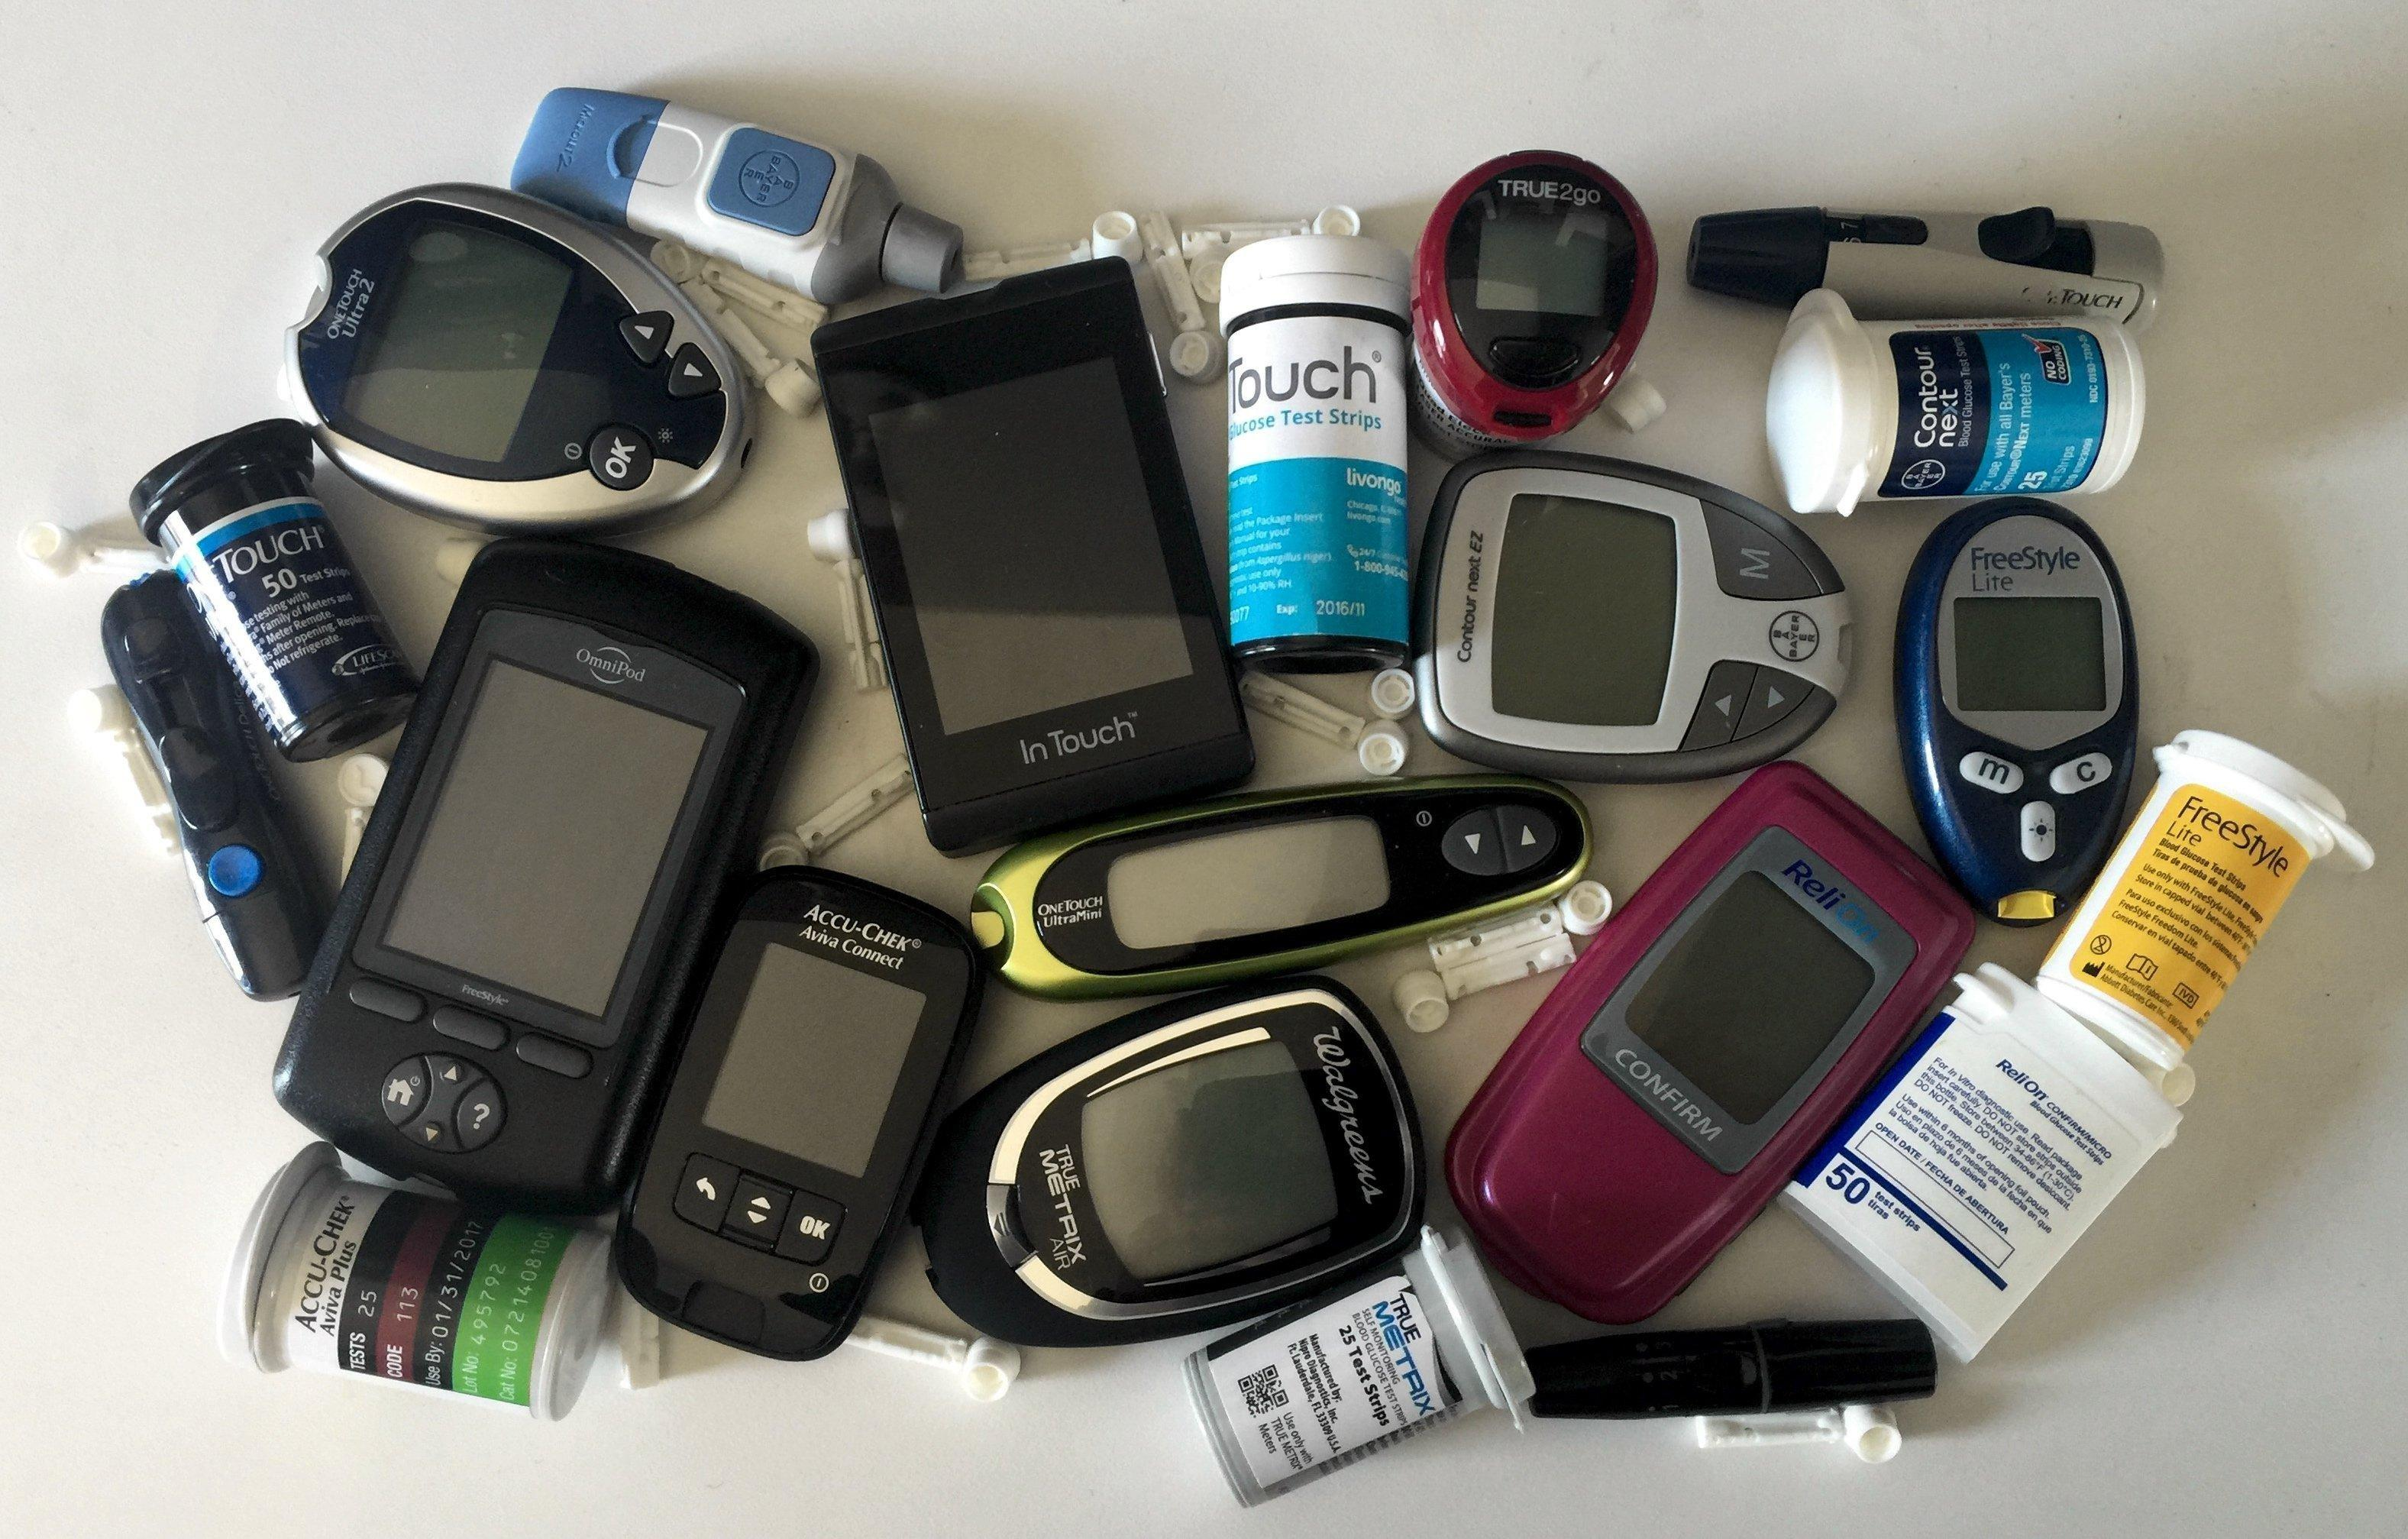 How Long Does A Blood Glucose Meter Last?